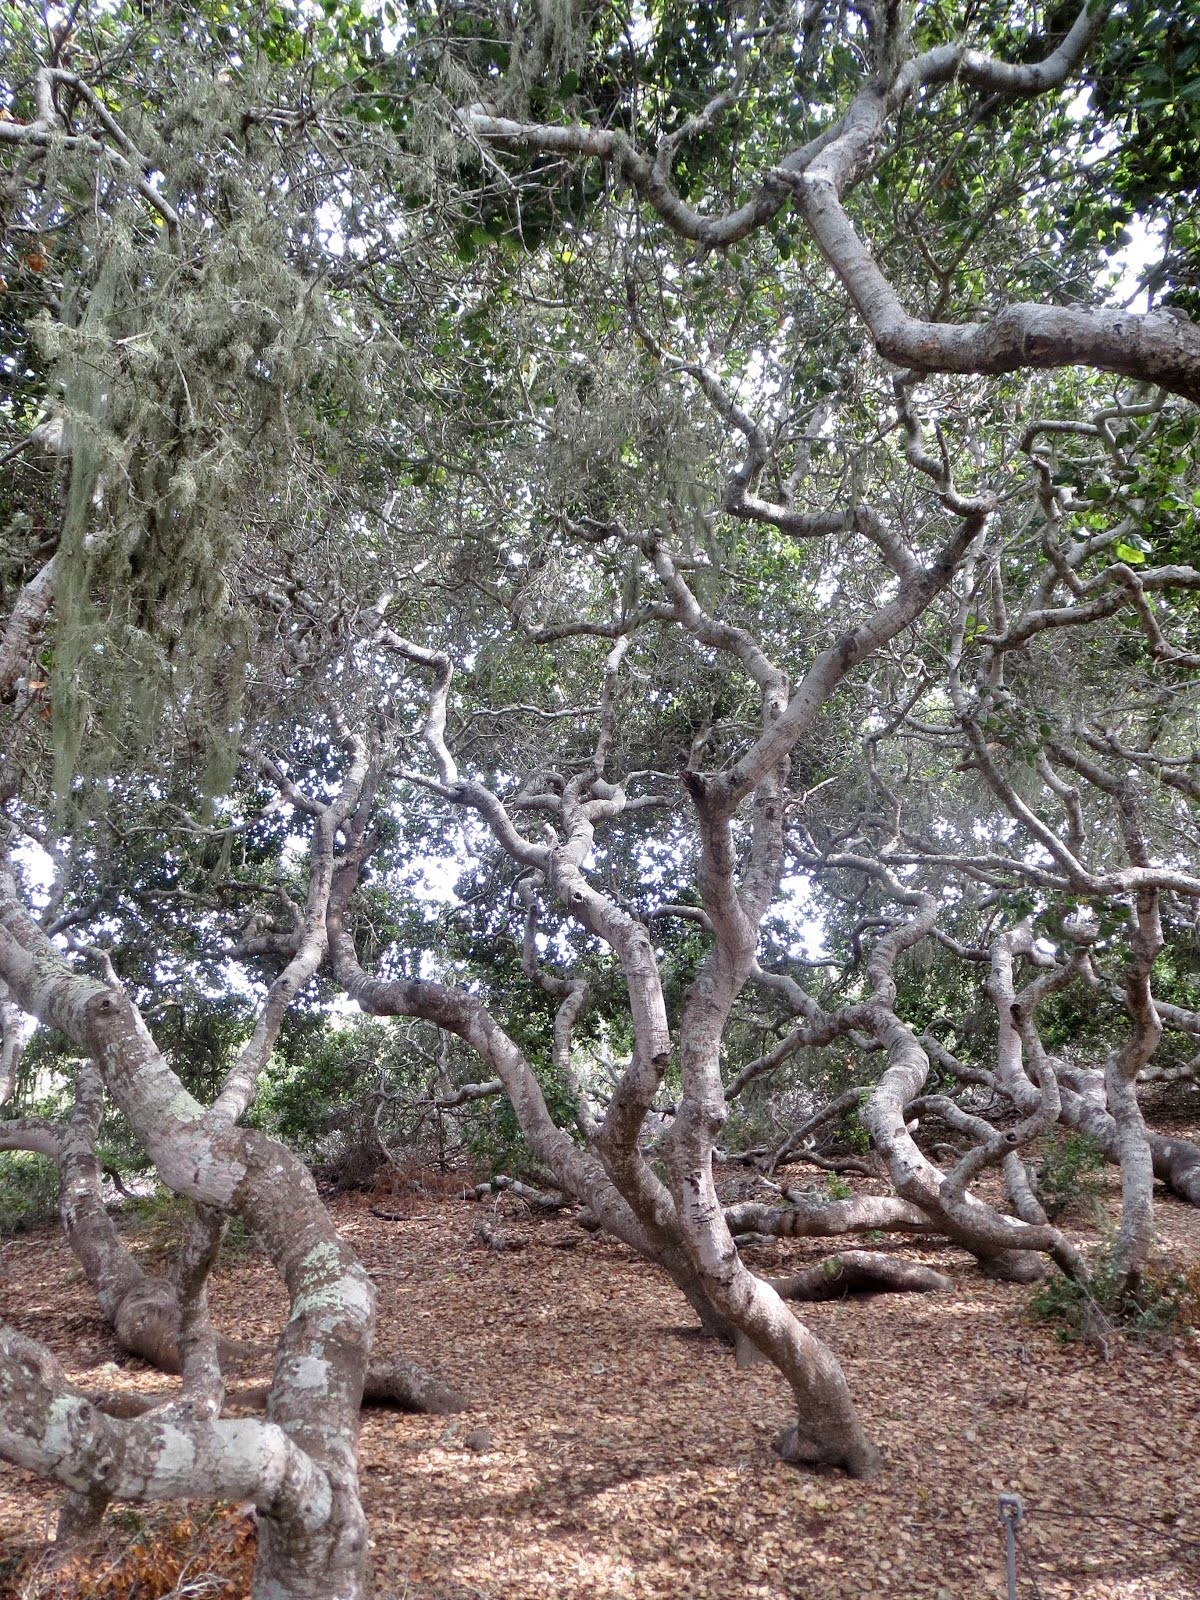 The Elfin Forest: A Land of Mythical Woodland Beings? Maybe Not Quite...